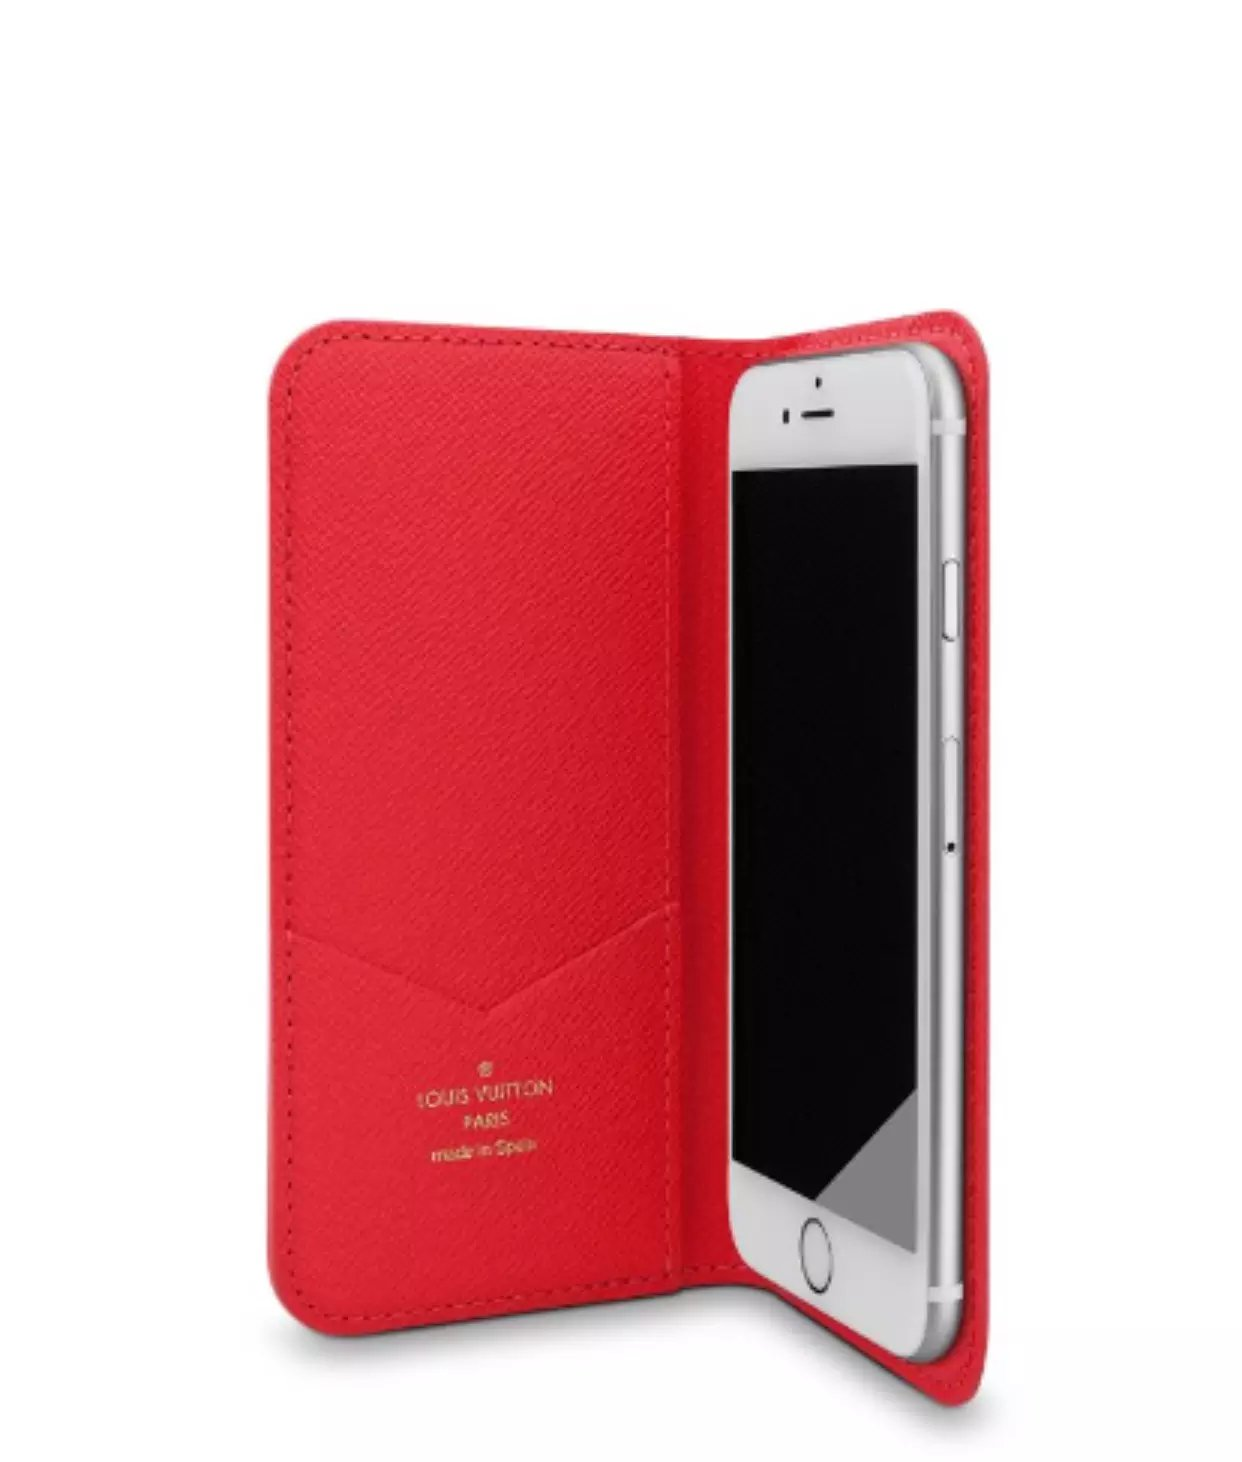 iphone handyhülle mit foto iphone handyhülle Louis Vuitton iphone 8 Plus hüllen iphone größe iphone cover foto iphone rück8 Plusite wann erschien das iphone 8 Plus handyhülle mit fotodruck apple iphone 8 Plus weiß